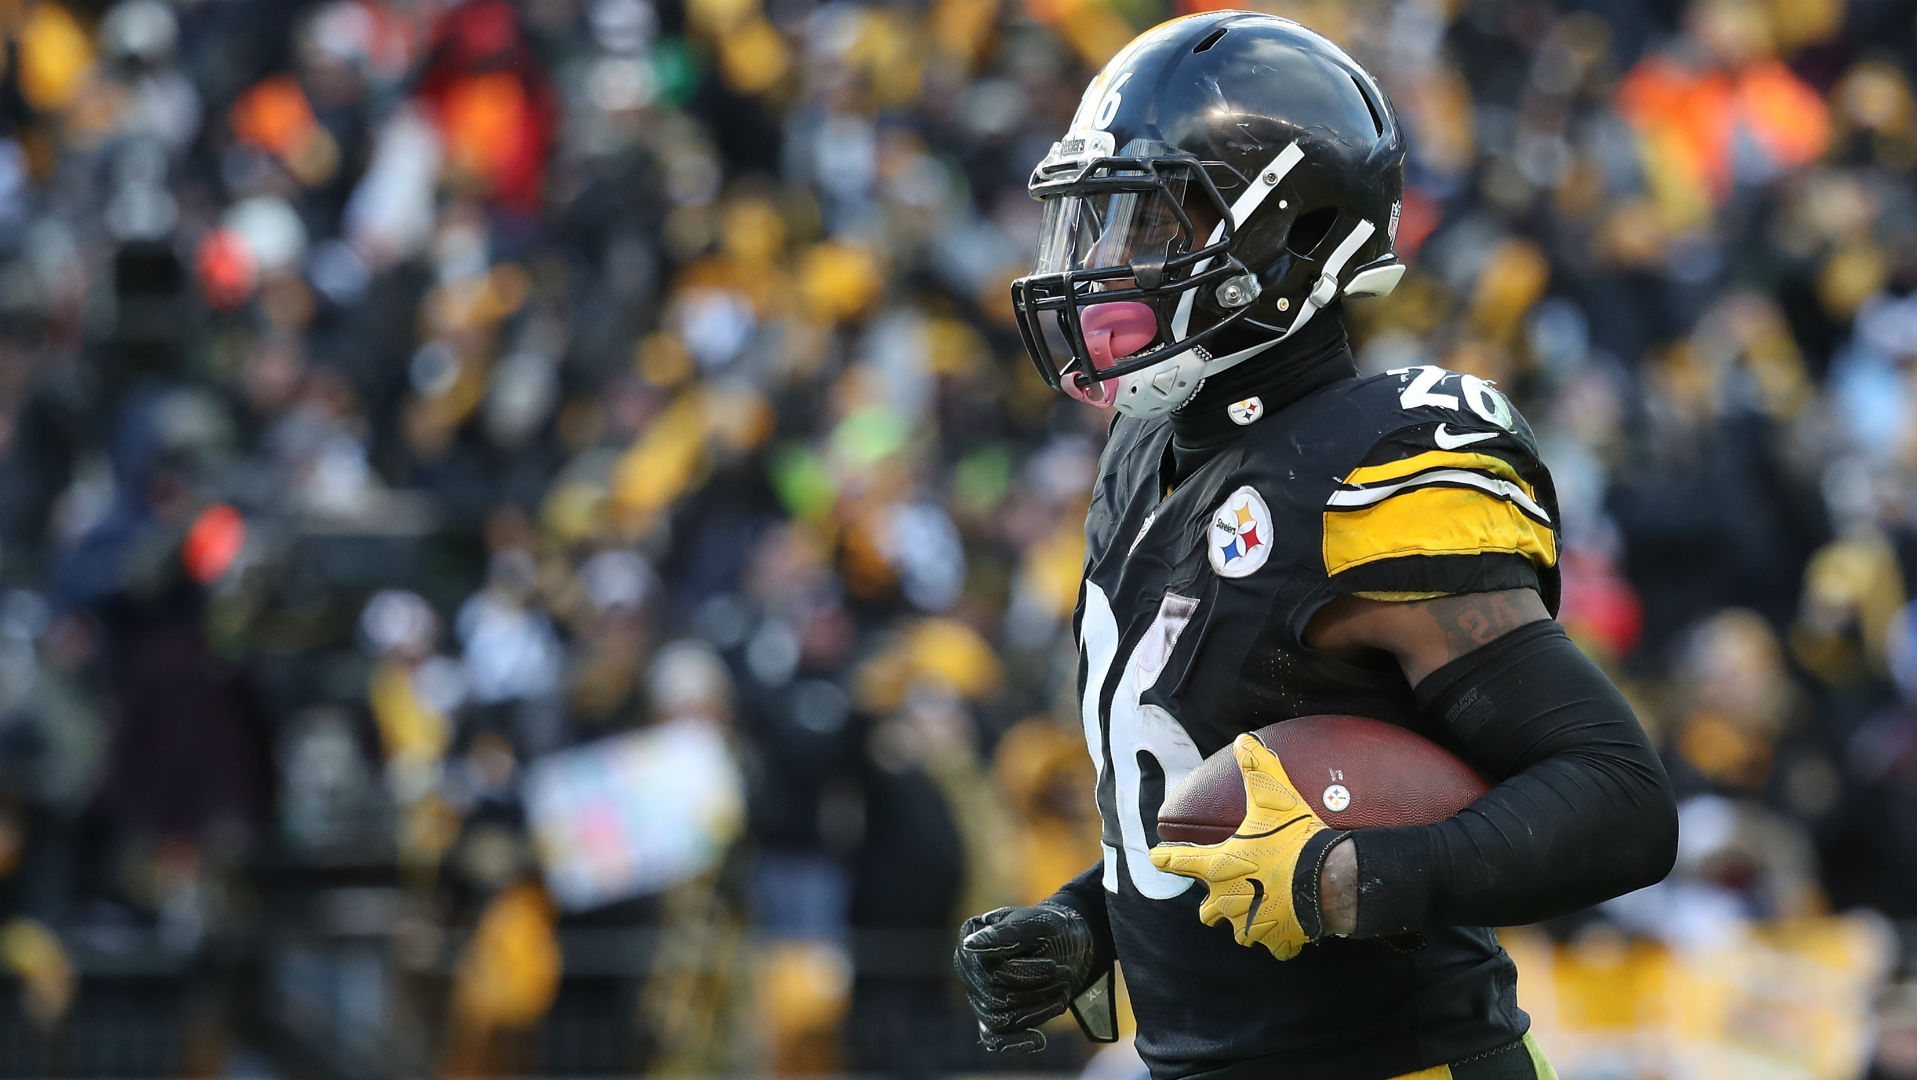 National Football League investigating injury status of Steelers' Bell before AFC game